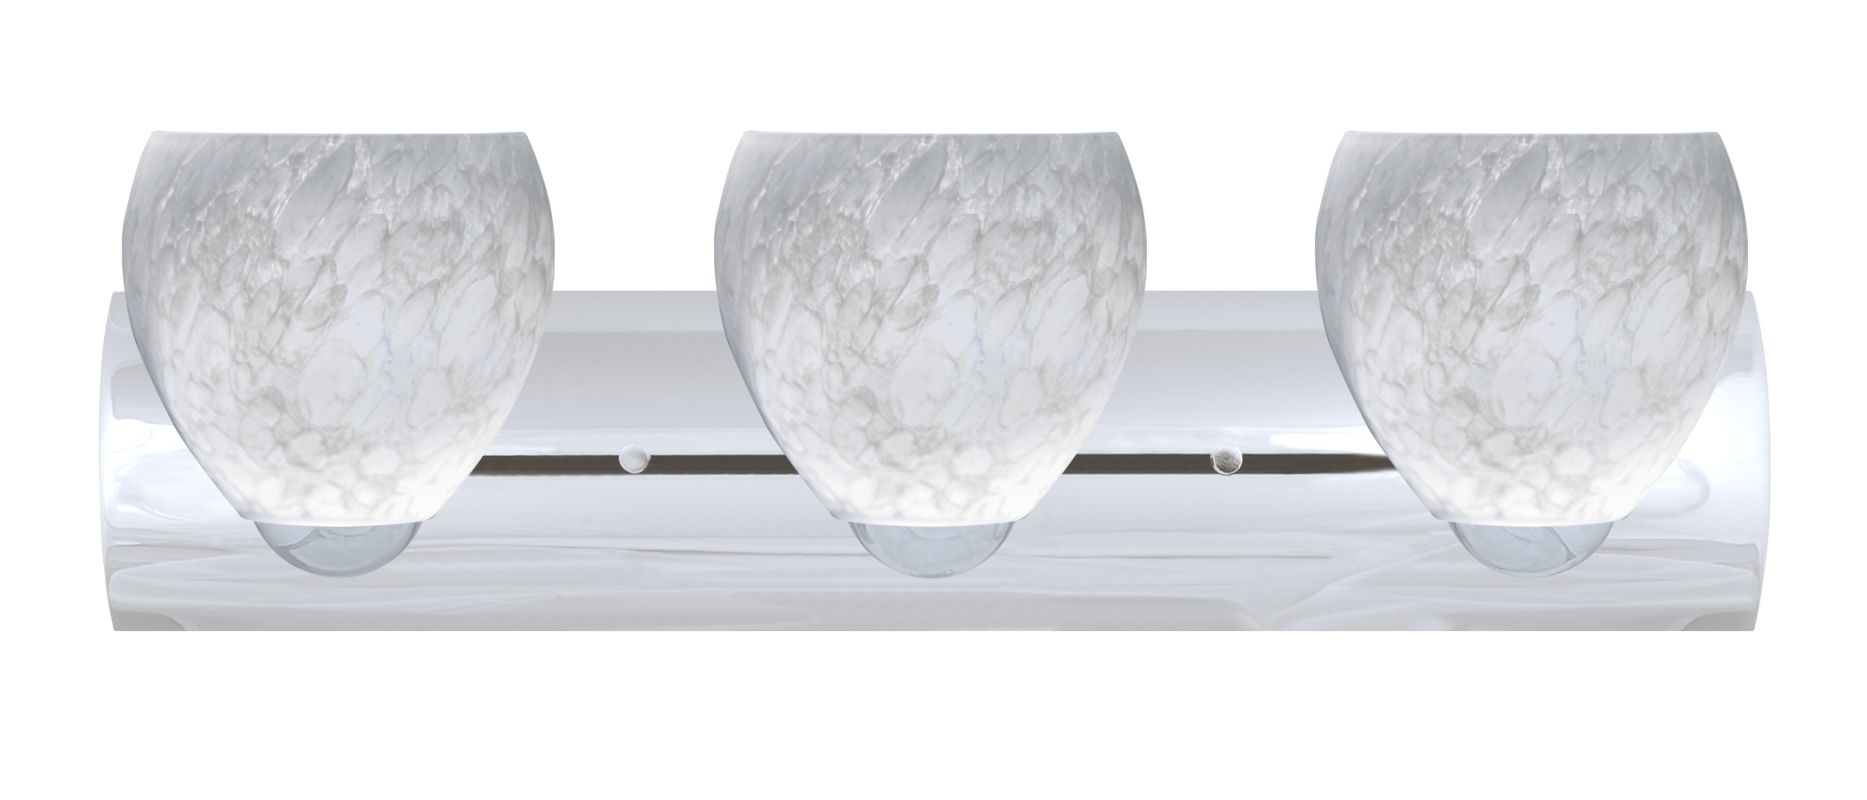 Besa Lighting 3WZ-412219-LED Bolla 3 Light Reversible LED Bathroom